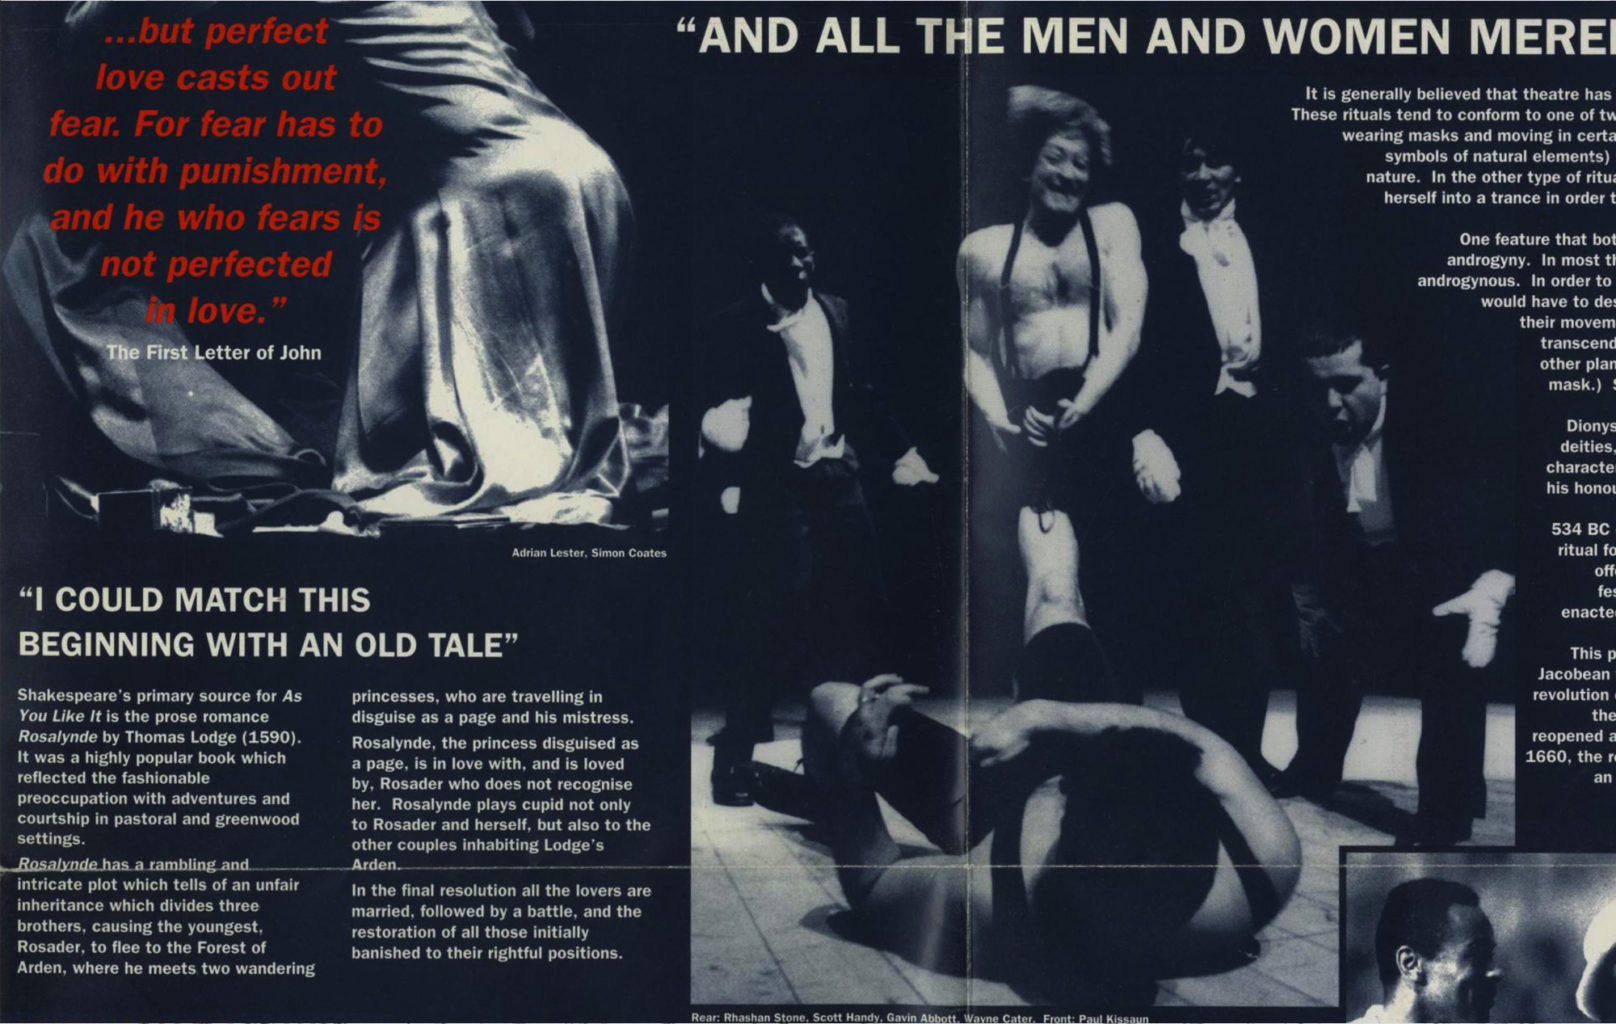 Programme for Cheek by Jowl's production of As You Like It (1994-1995)